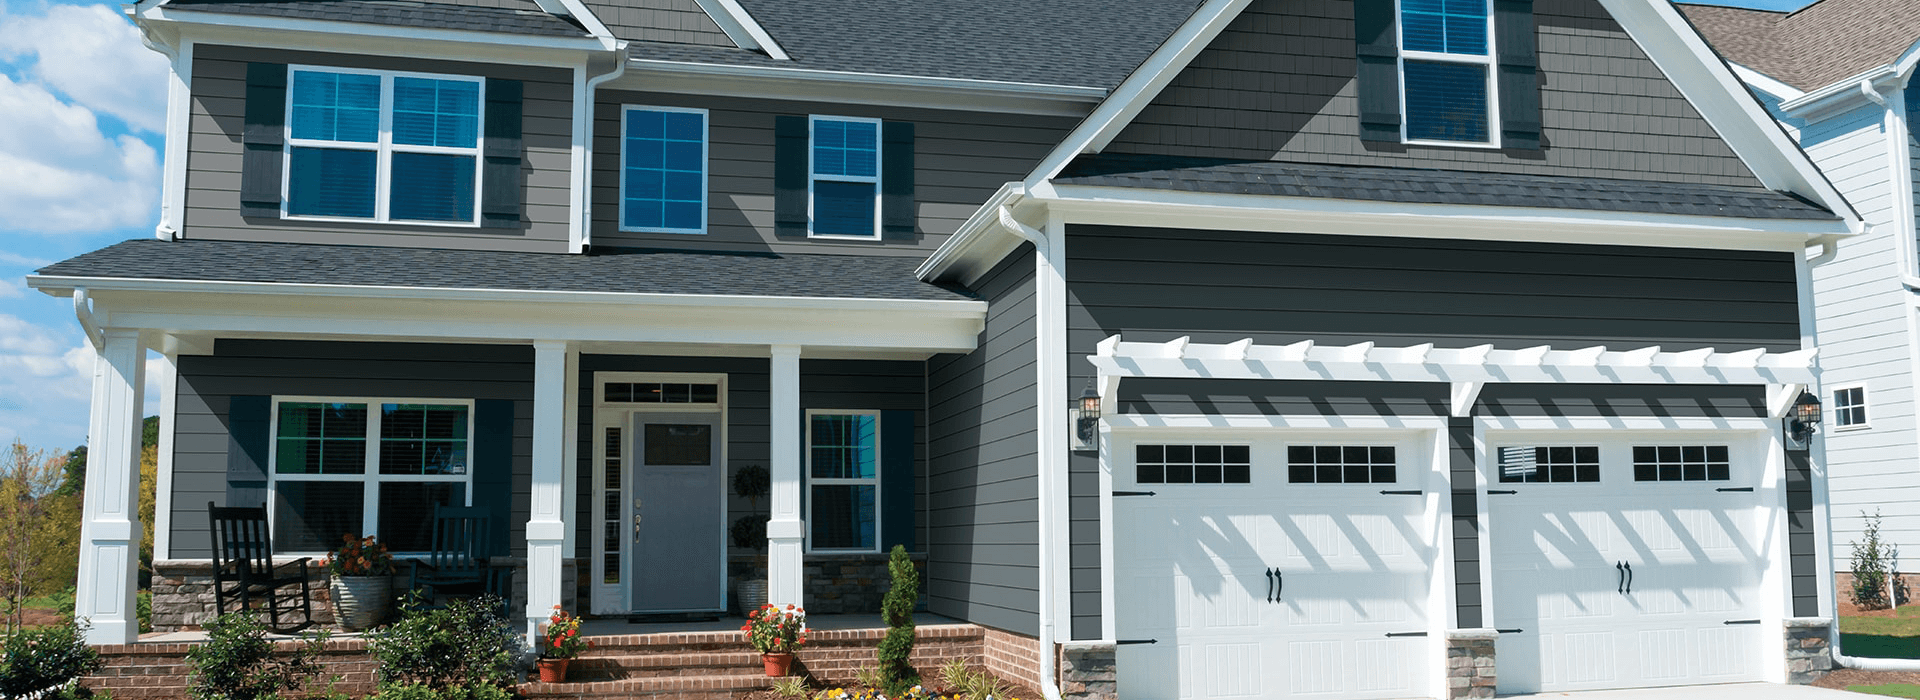 Royal City Aluminum Products Siding Contractor Guelph